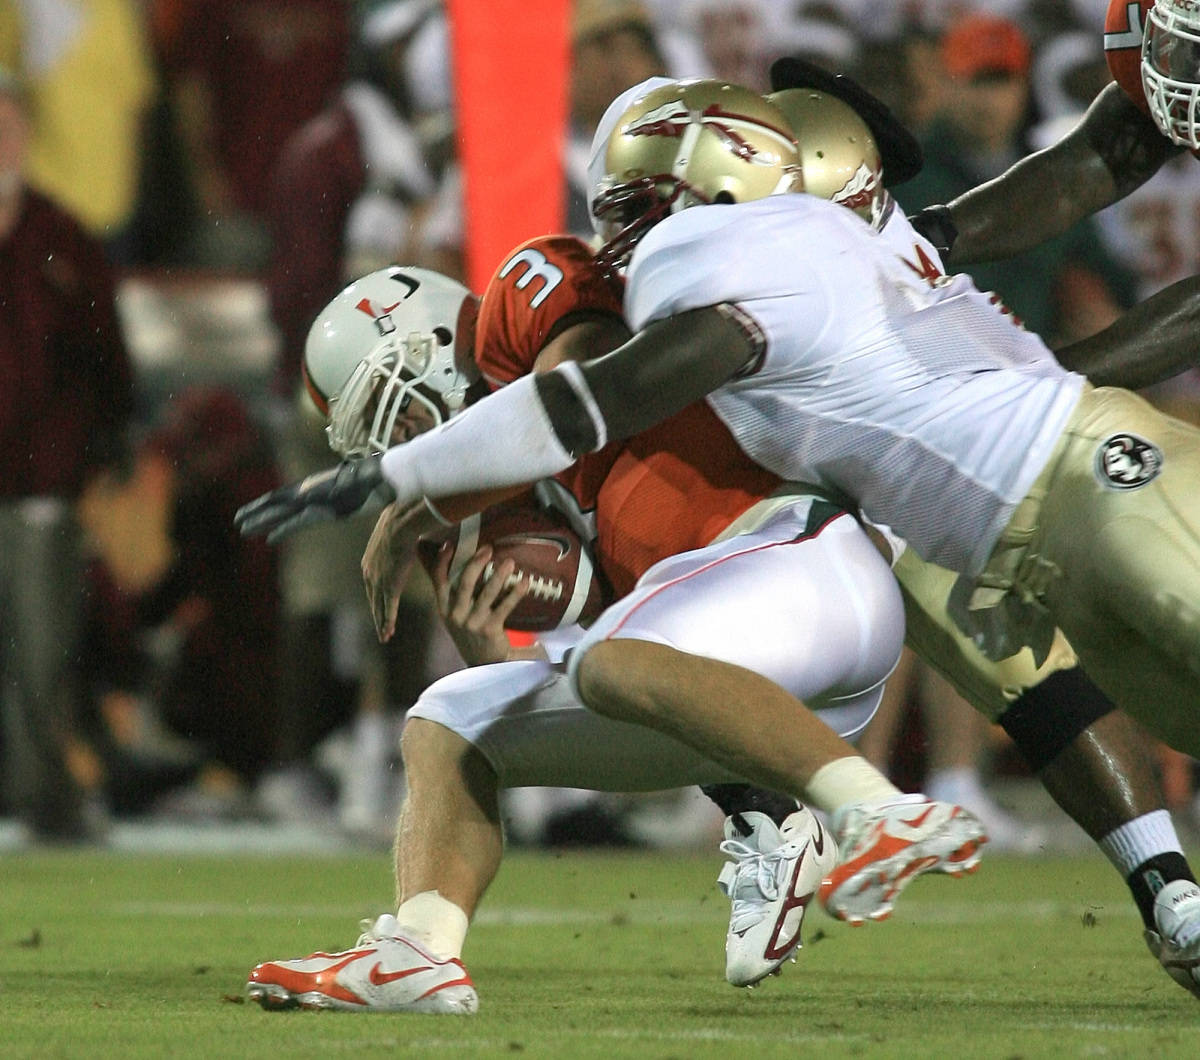 Miami quarterback Kyle Wright (3) is sacked by Florida State players Buster Davis, foreground, and Paul Griffin, rear during the first quarter Monday, Sept. 4, 2006 at the Orange Bowl in Miami. (AP Photo/Luis M. Alvarez)